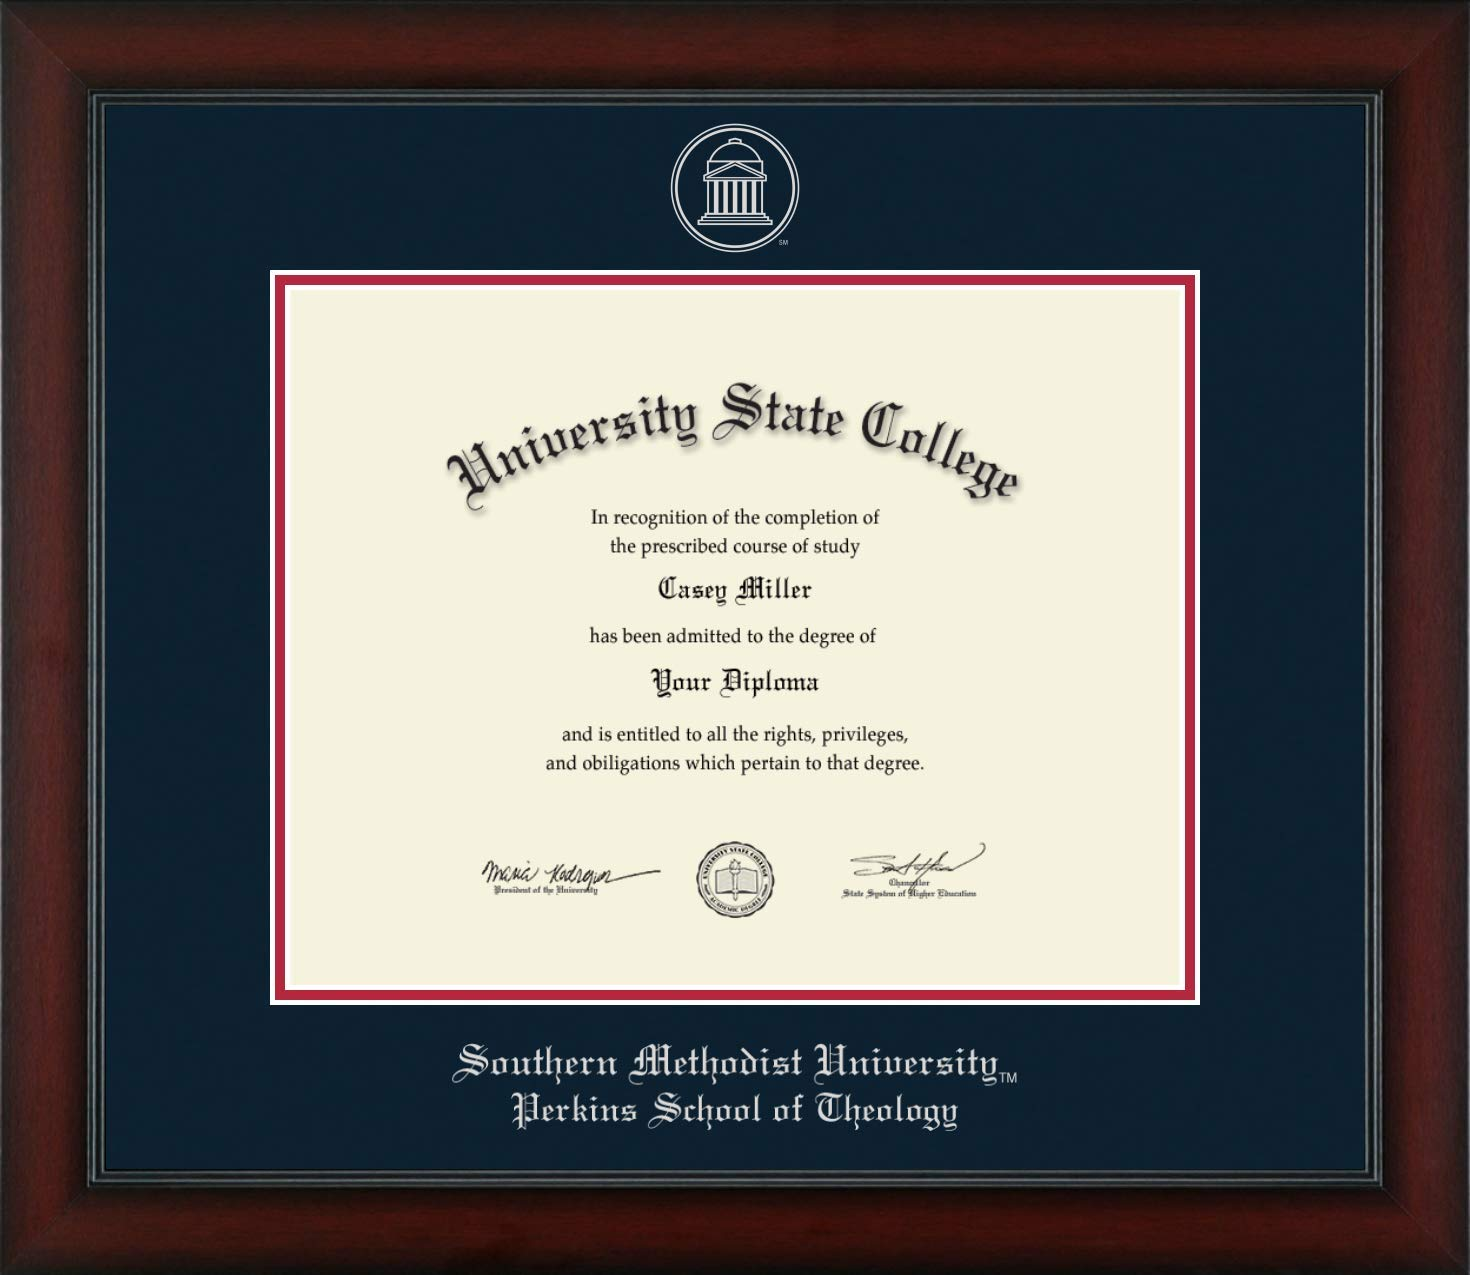 Southern Methodist University Perkins School of Theology - Officially Licensed - Silver Embossed Diploma Frame - Diploma Size 14'' x 11''